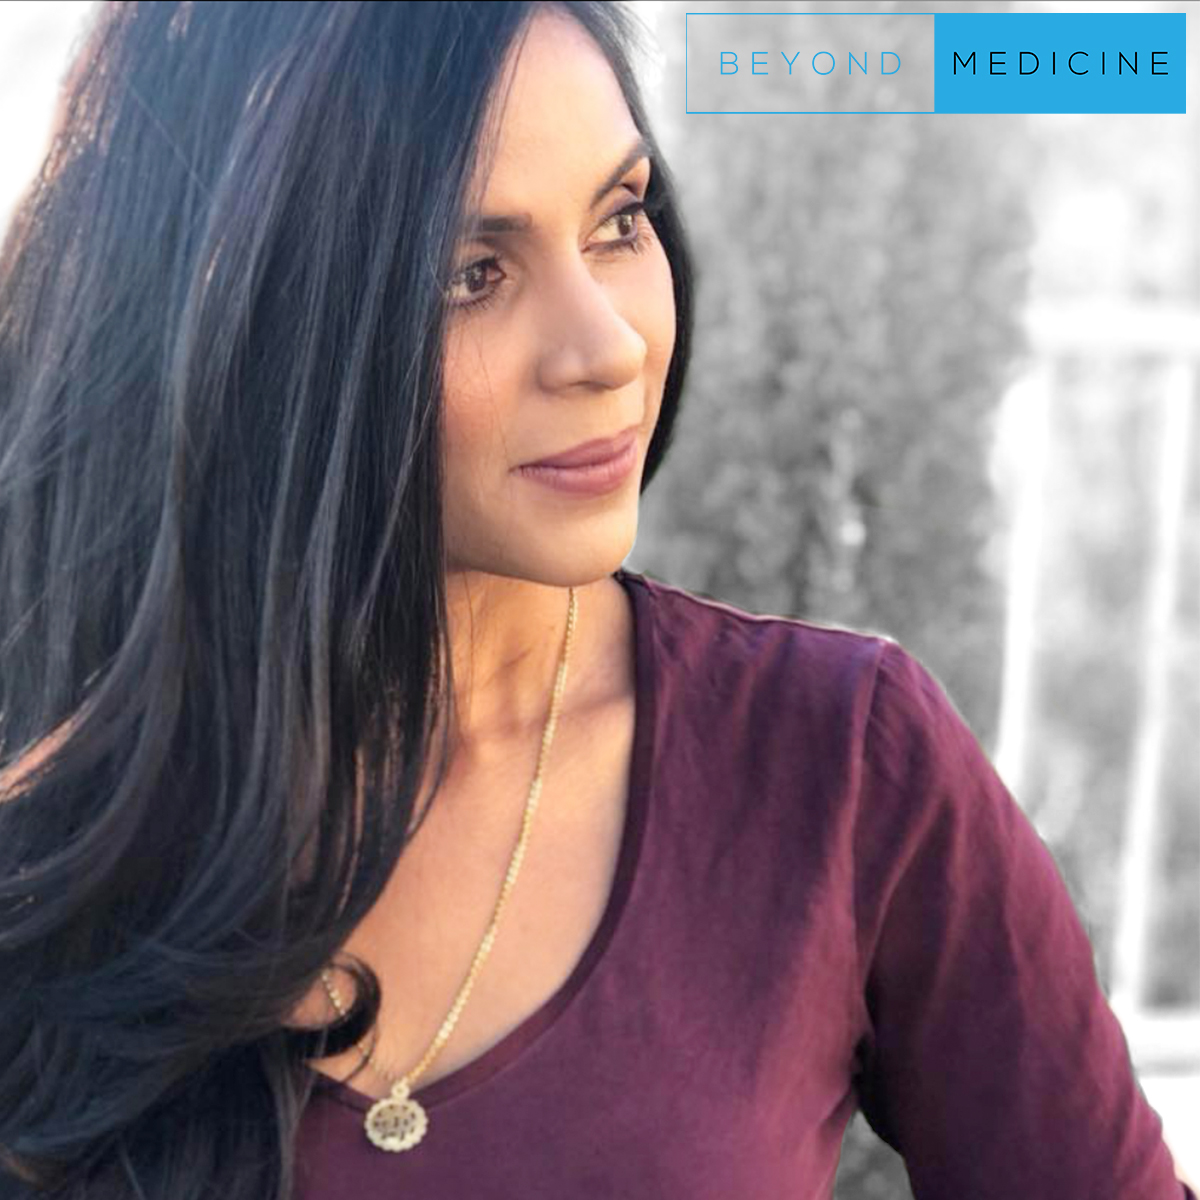 Integrative Medicine - Dr. Jyoti Patel is a triple board certified MD practicing Integrative Medicine and combining Eastern and Western philosophies to help heal her community.